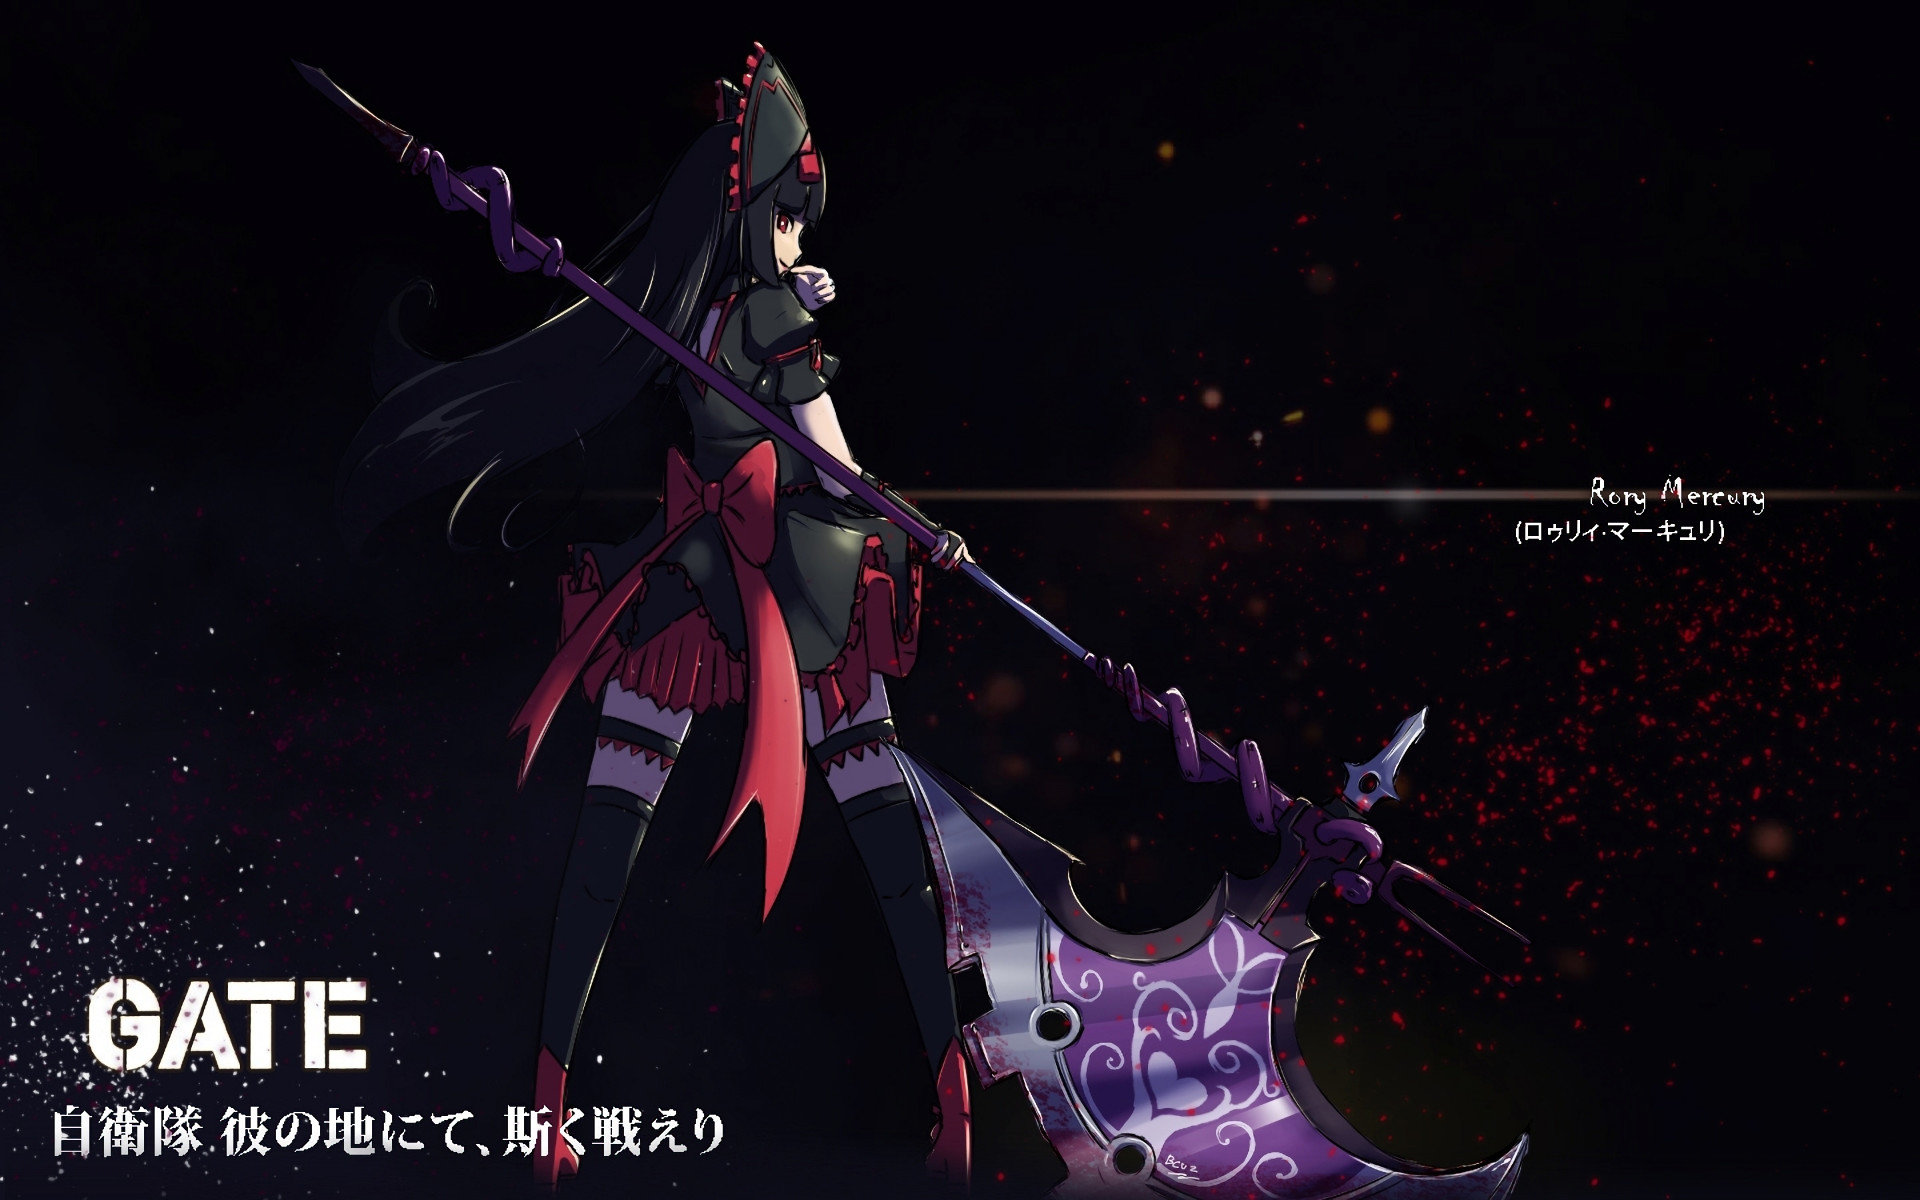 Free Rory Mercury high quality wallpaper ID:409025 for hd 1920x1200 PC